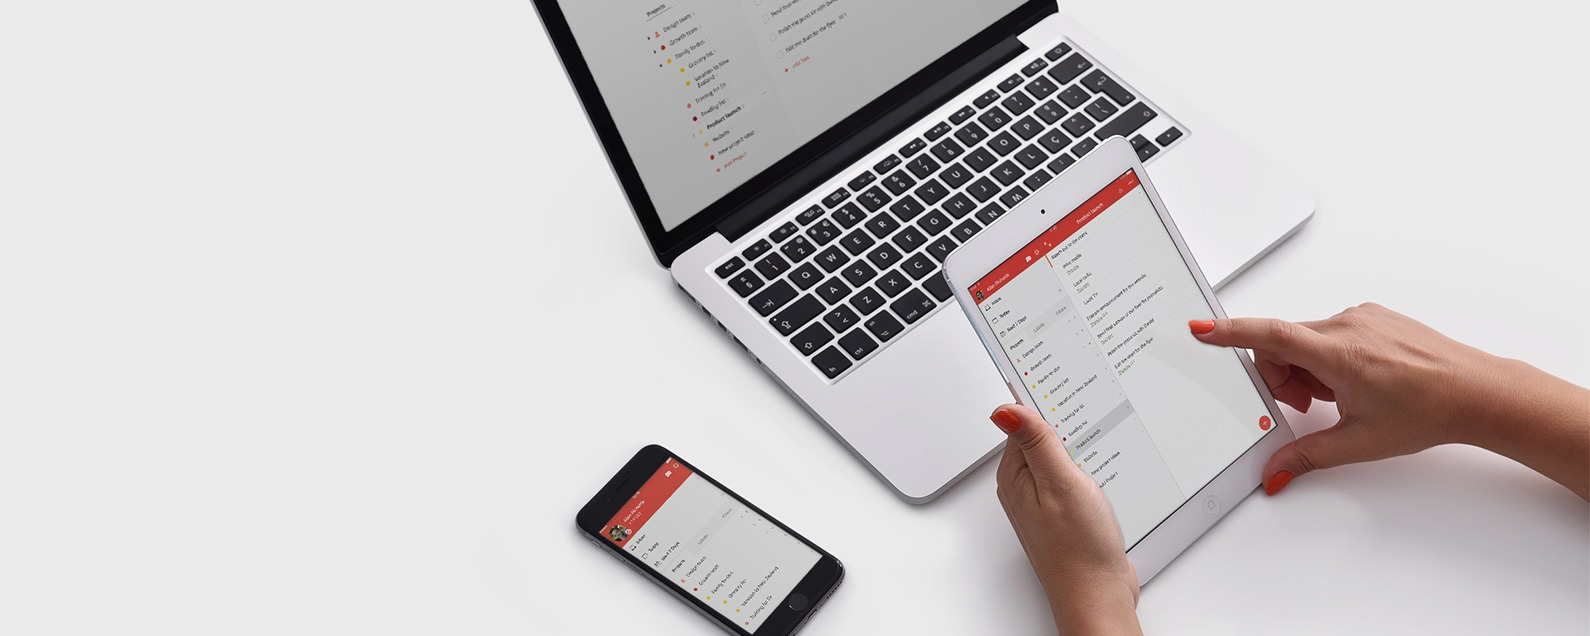 5 of the Best Task Manager Apps & To-Do List Apps to Keep You on ...